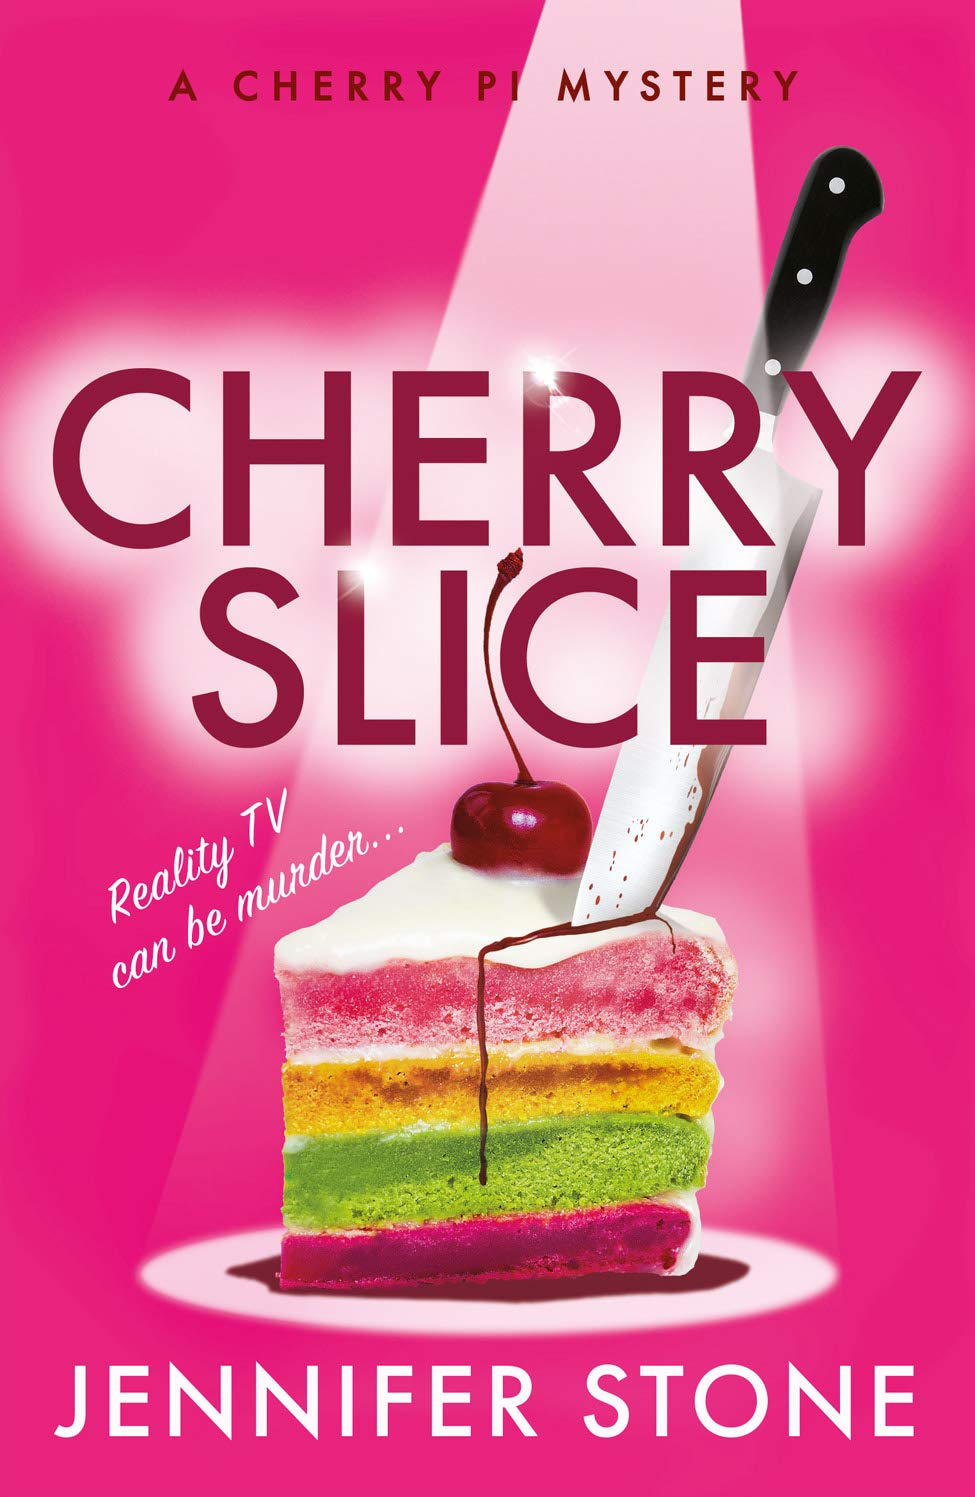 Cherry Slice (A Cherry PI Mystery): Amazon.co.uk: Jennifer Stone ...